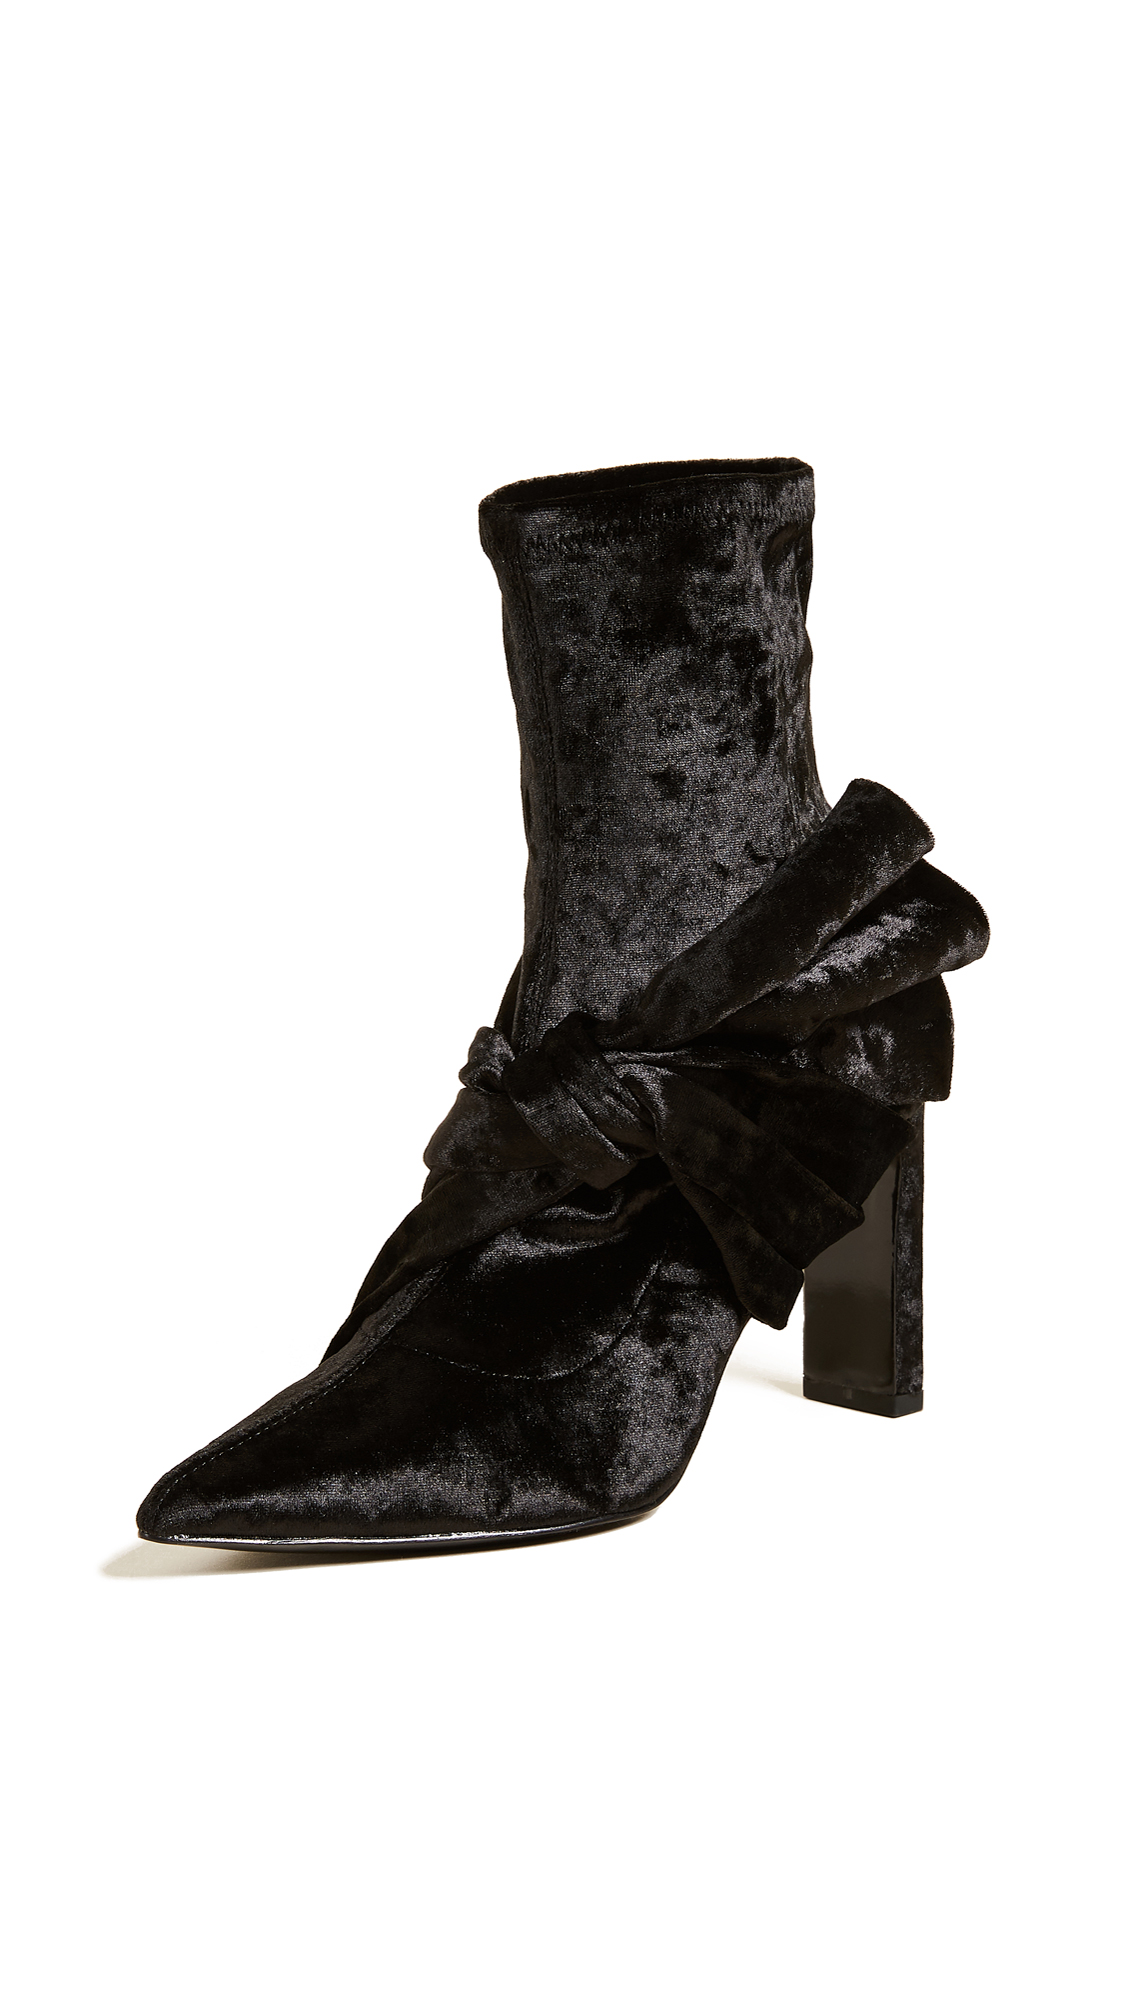 Sigerson Morrison Helin Bow Ankle Booties - Black